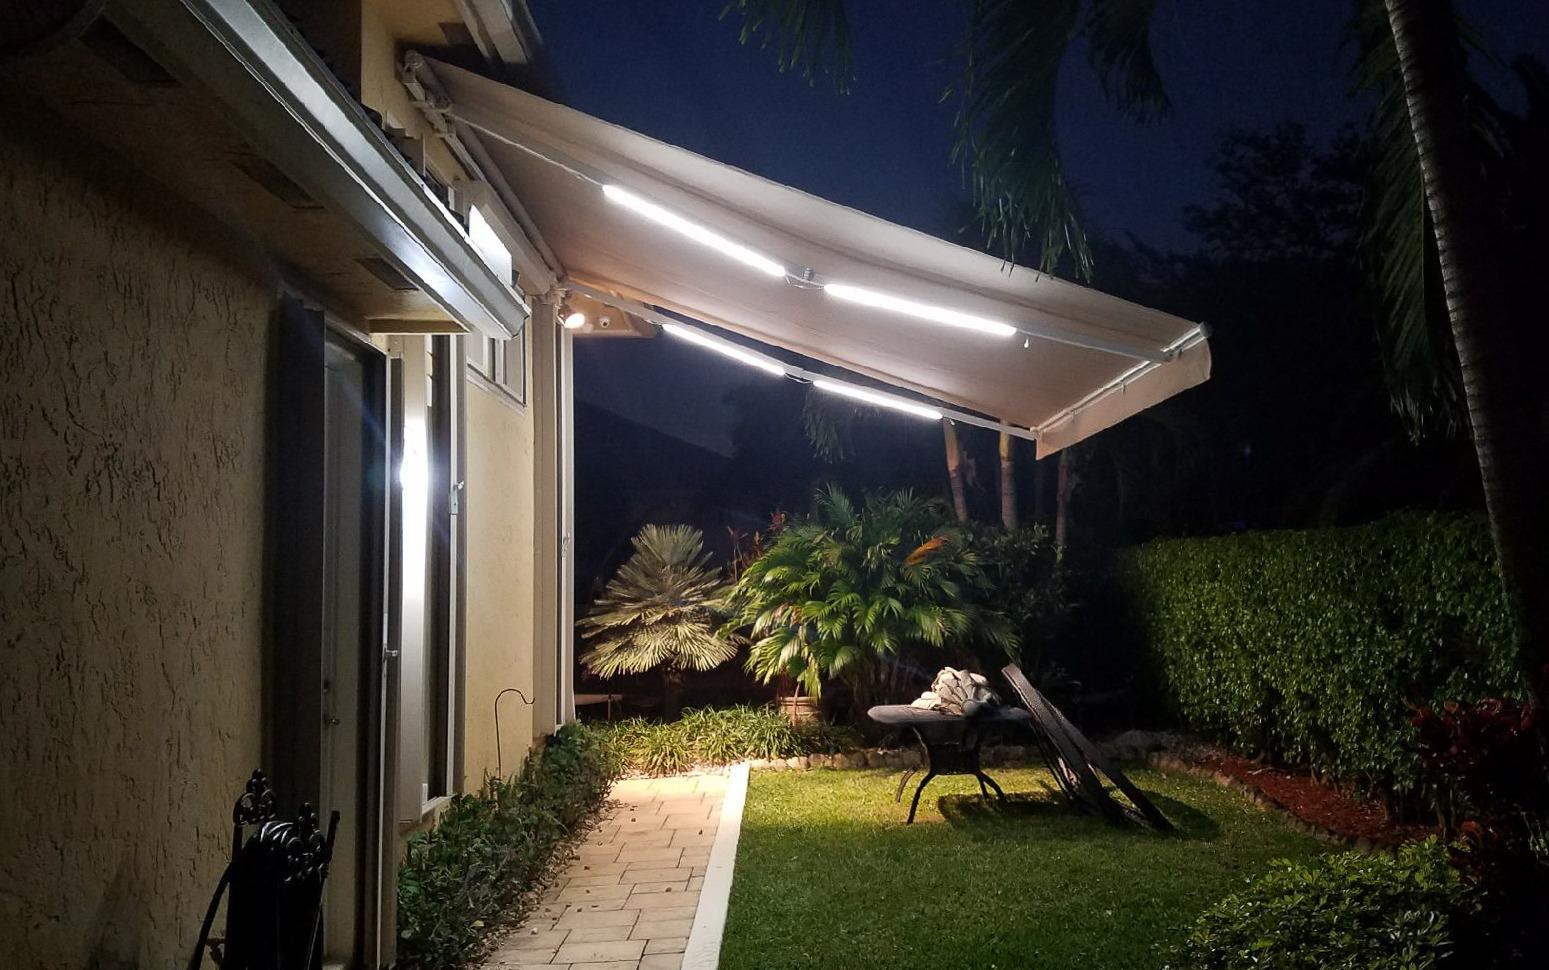 16' X 13' Wall Mount With LEDs